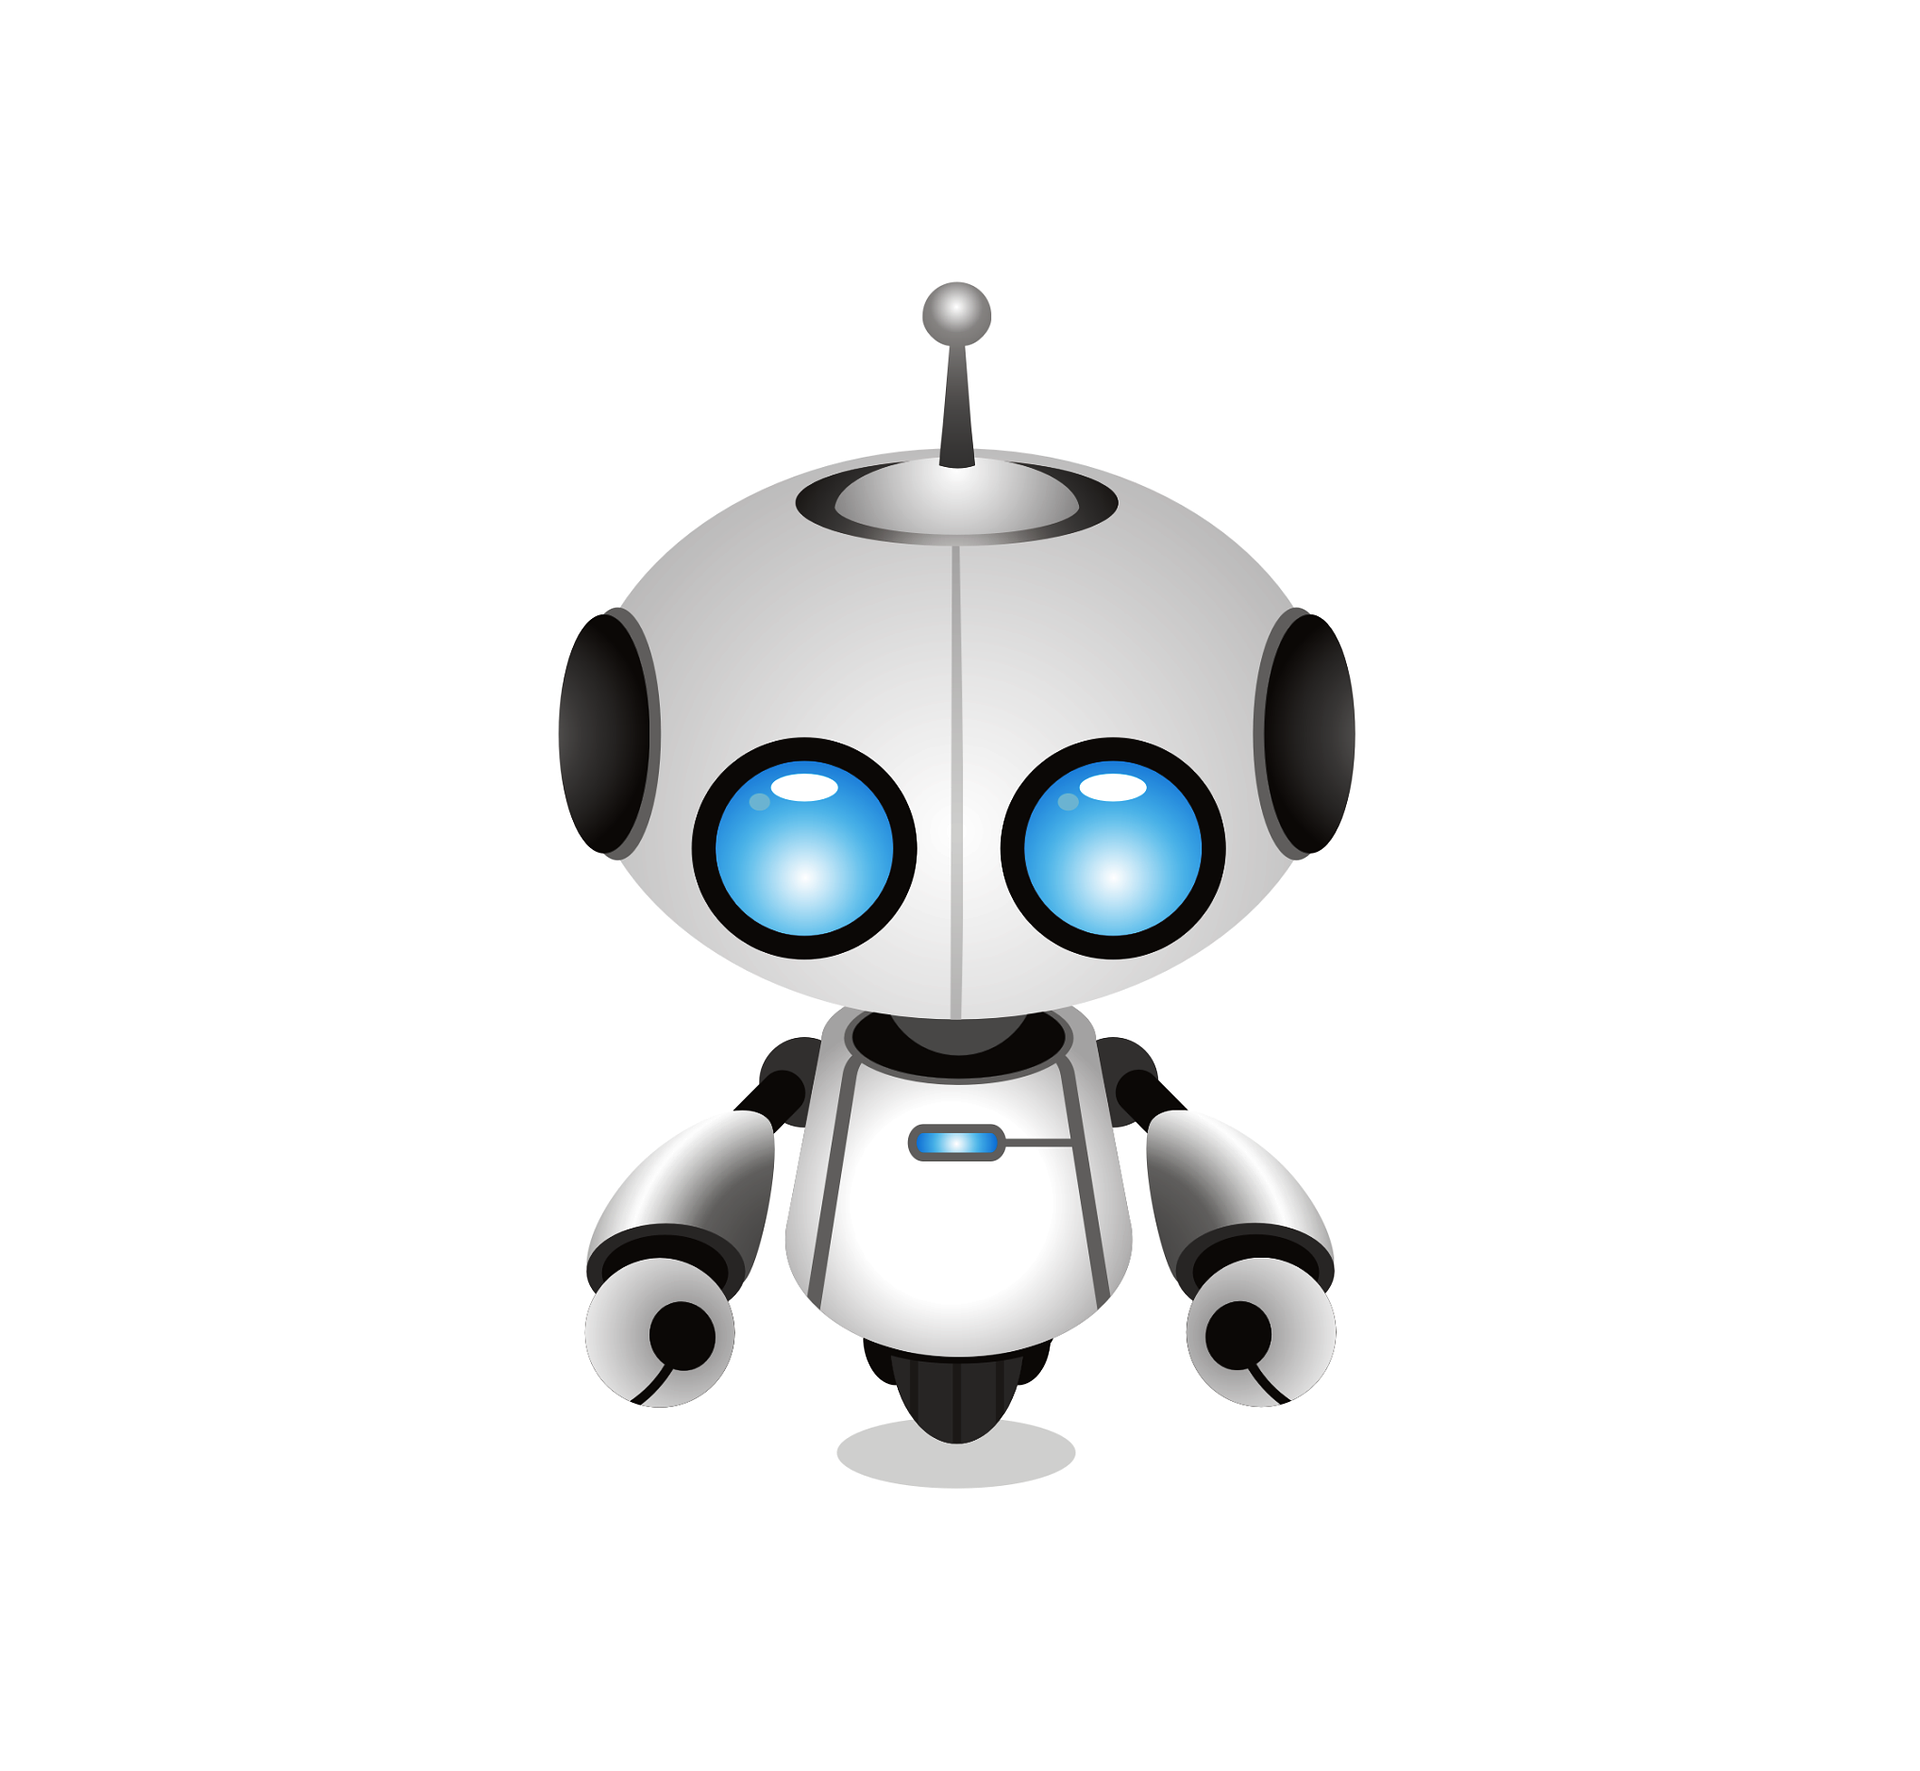 Helper Bot - He works for you 24/7, never asks for a raise, and always stays on task.